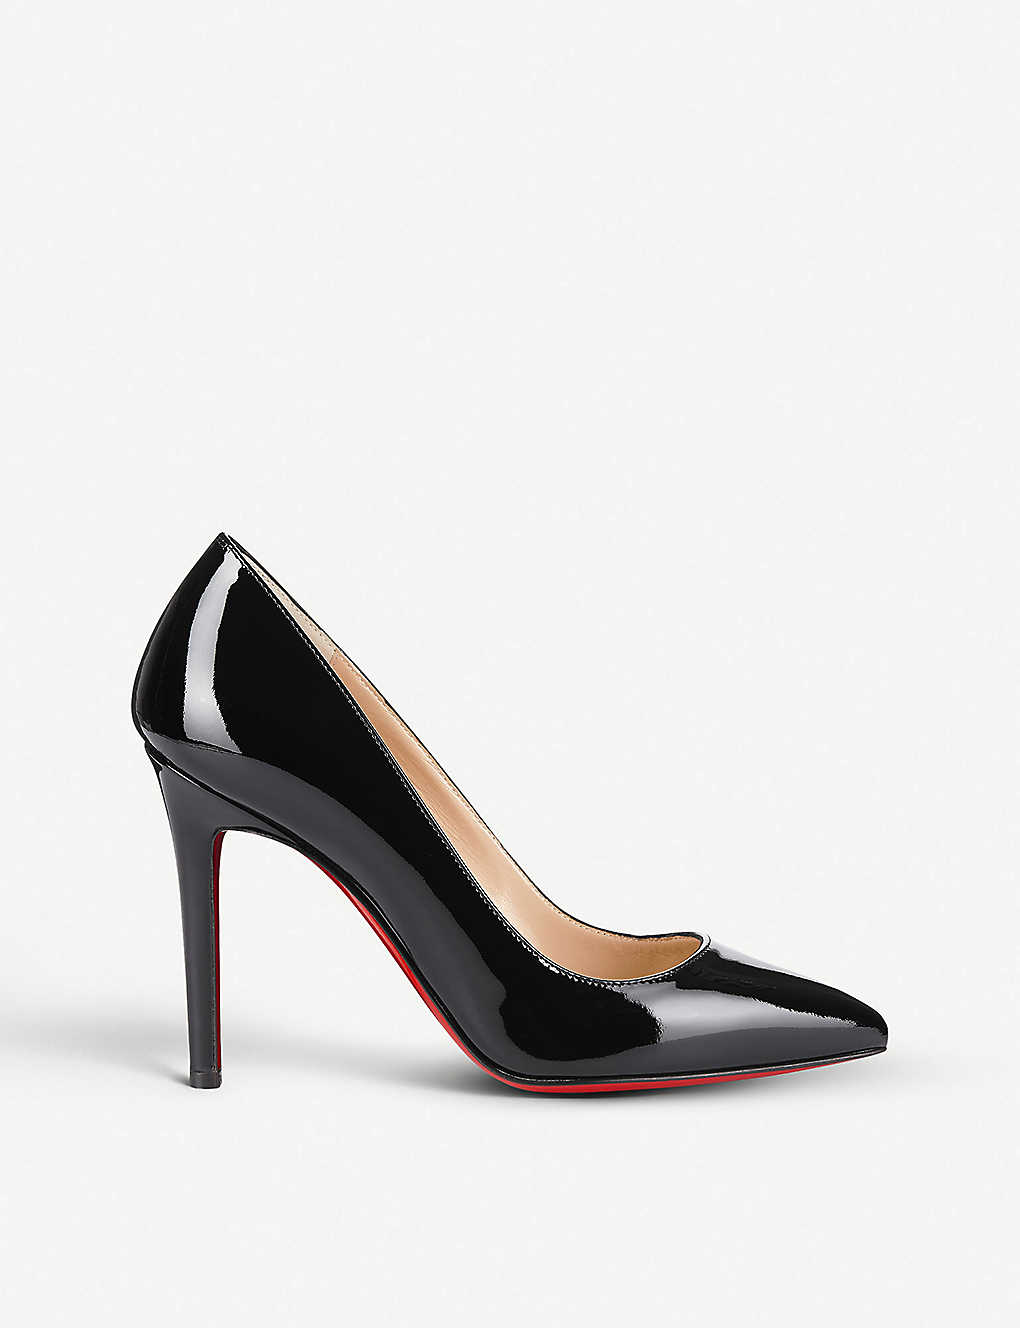 85f1ce065d6b CHRISTIAN LOUBOUTIN - Pigalle 100 patent